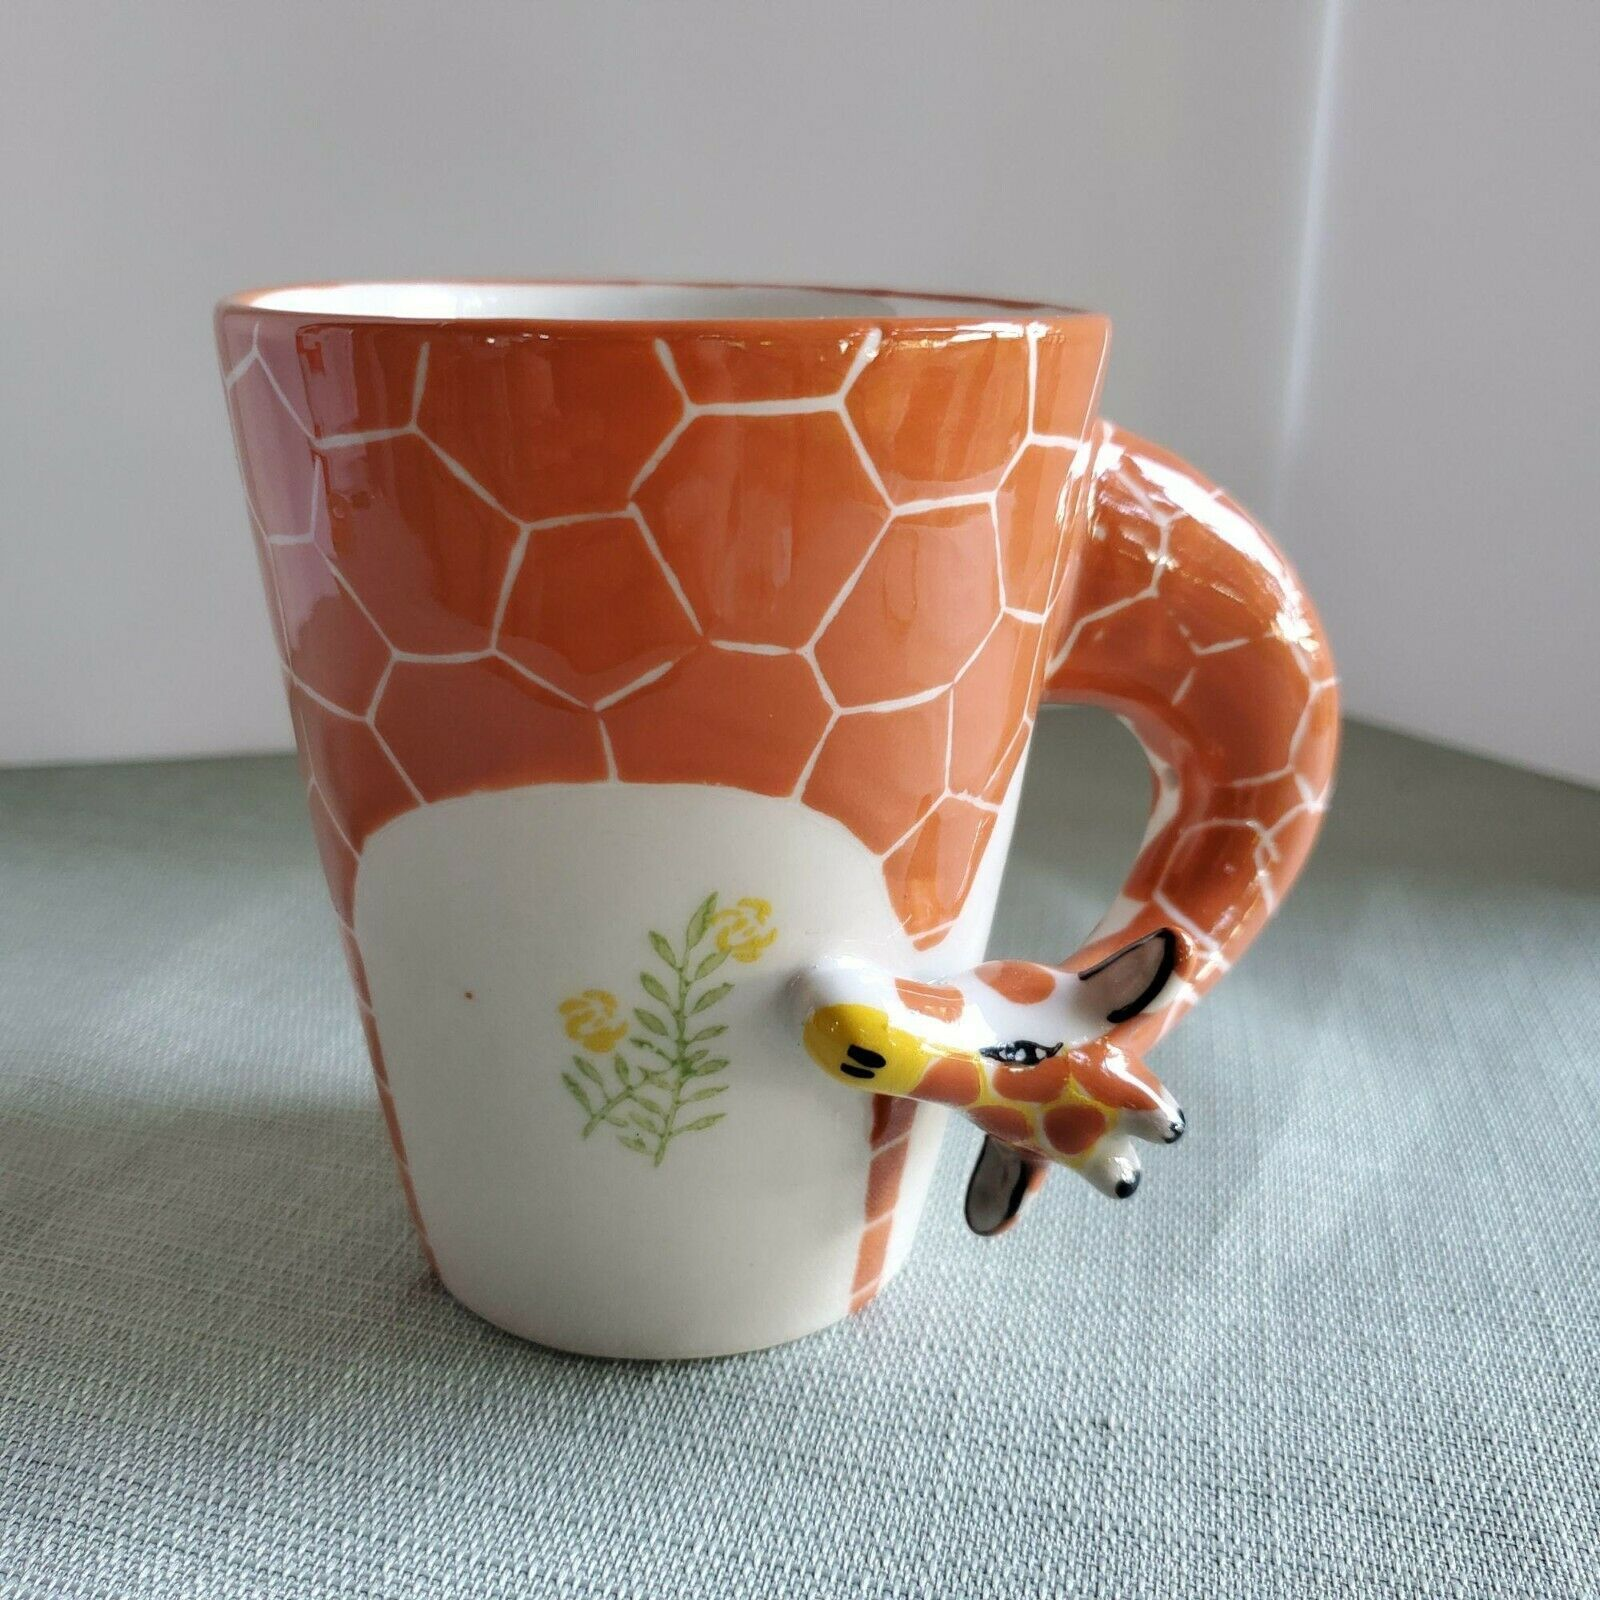 Primary image for Giraffe Mug white and orange with Giraffe head wrap around handle eating yellow